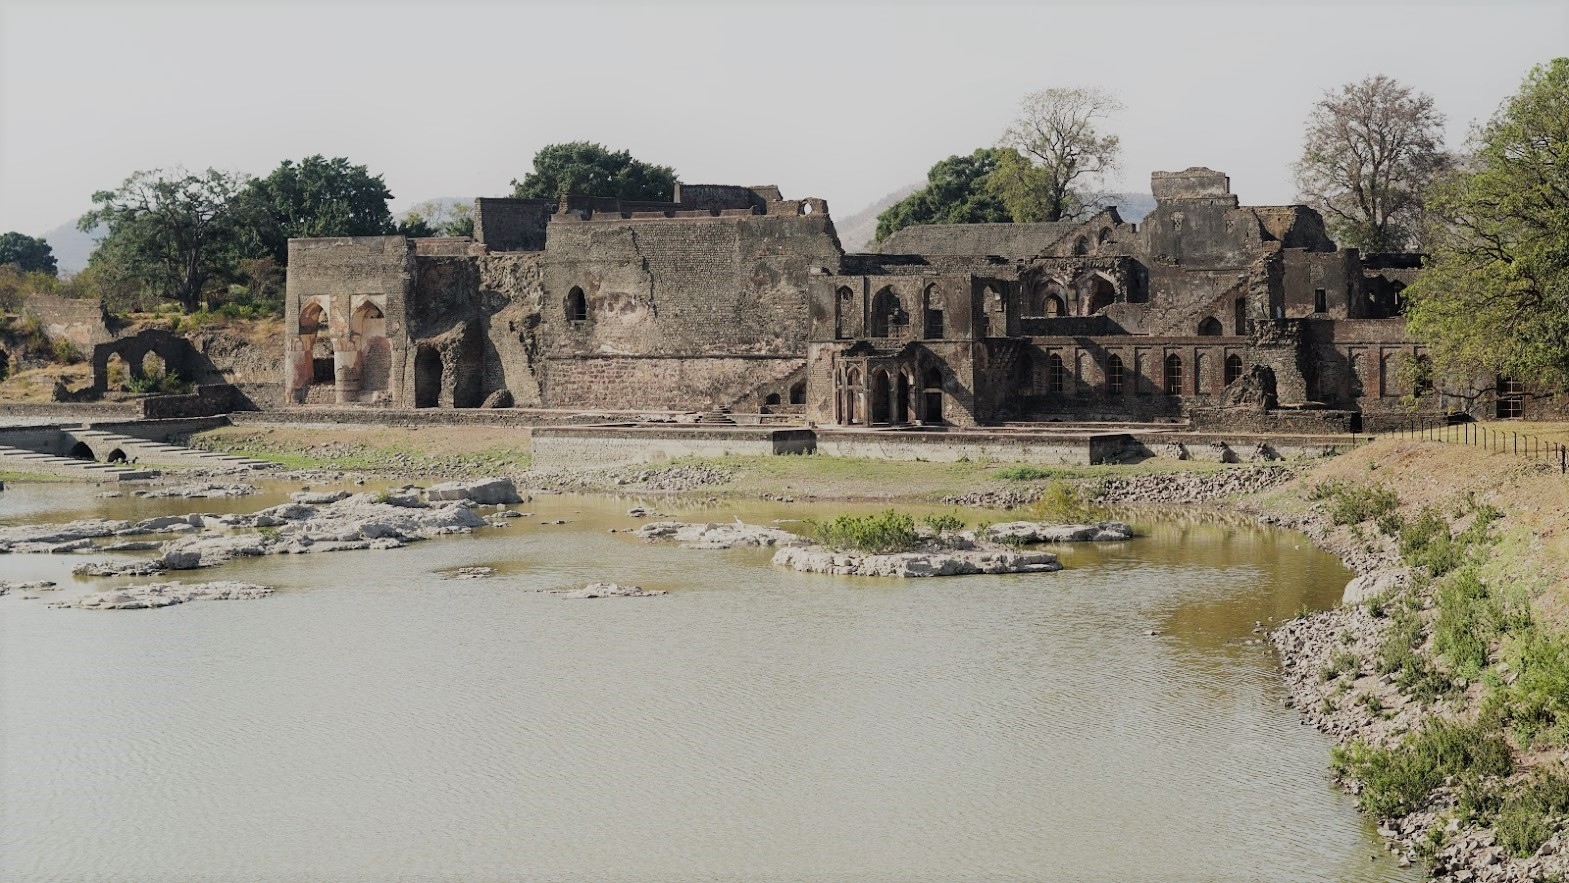 The city of ruins: Mandu